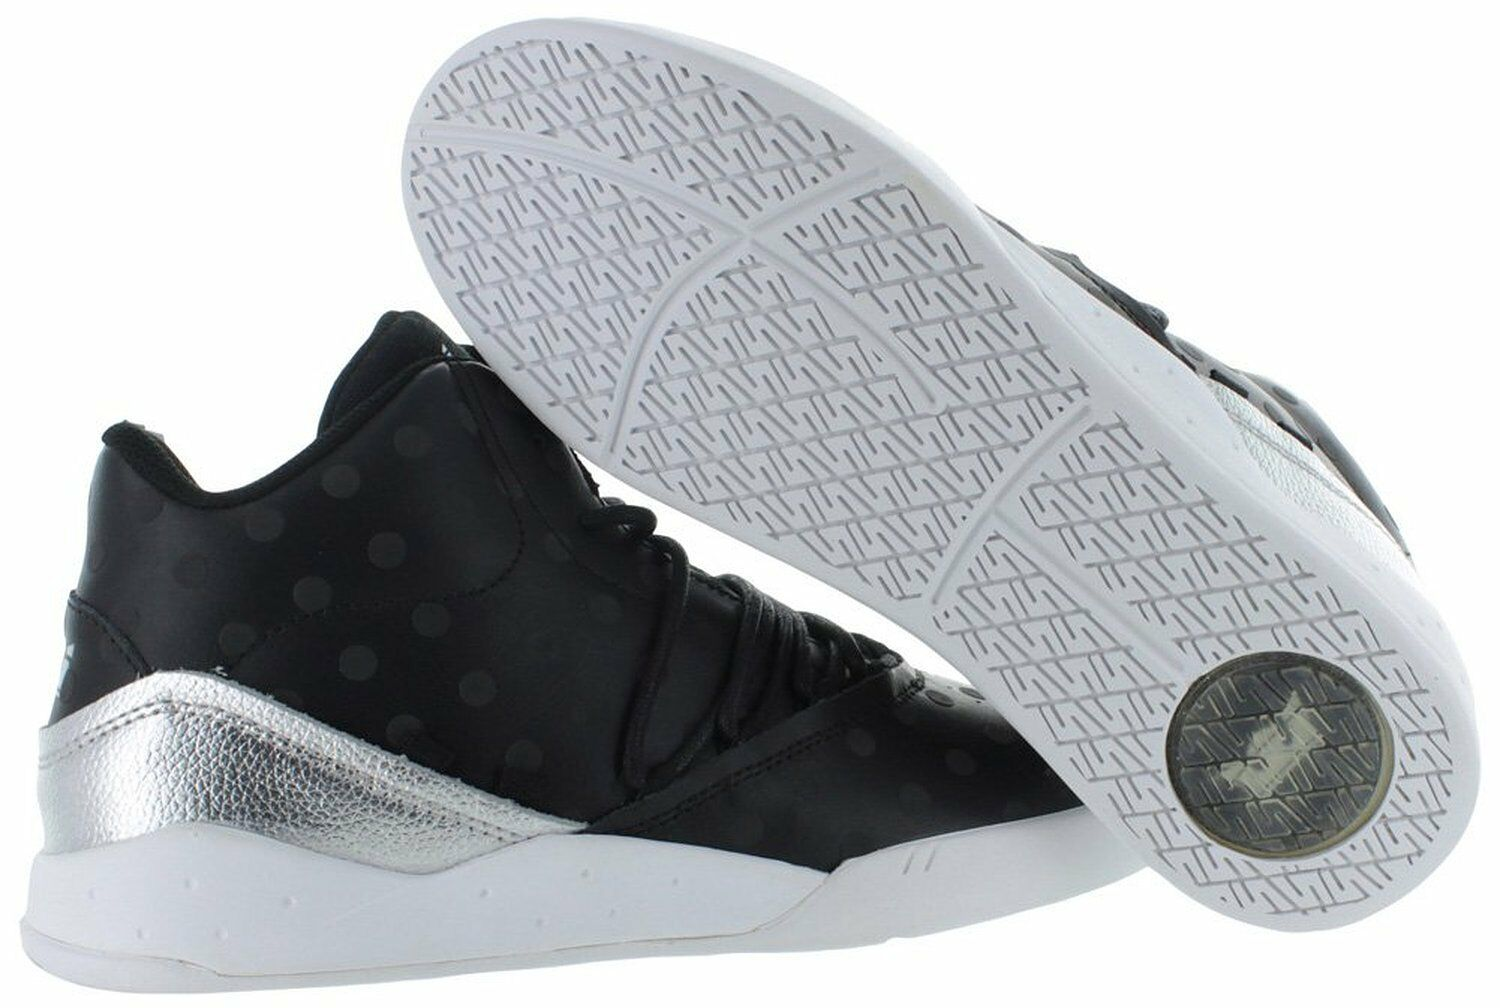 Supra Estaban Men's Stevie Williams Signature Sneakers shoes NEW SZ 11.5 S04112